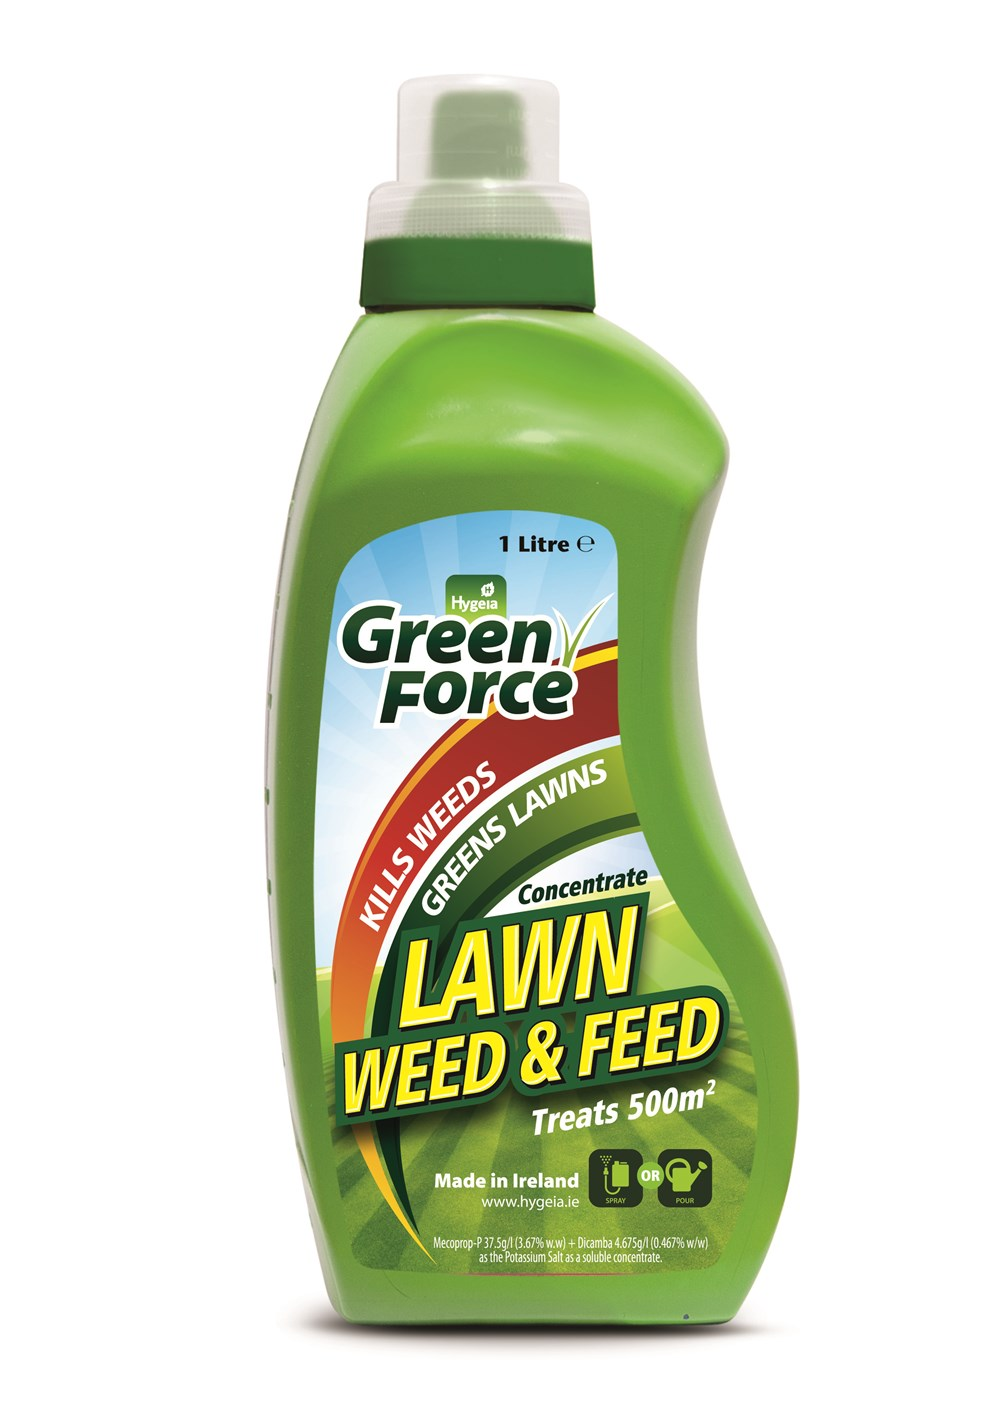 Hygeia Lawn Weed Amp Feed Concentrate 1 Litre Lawn Feed